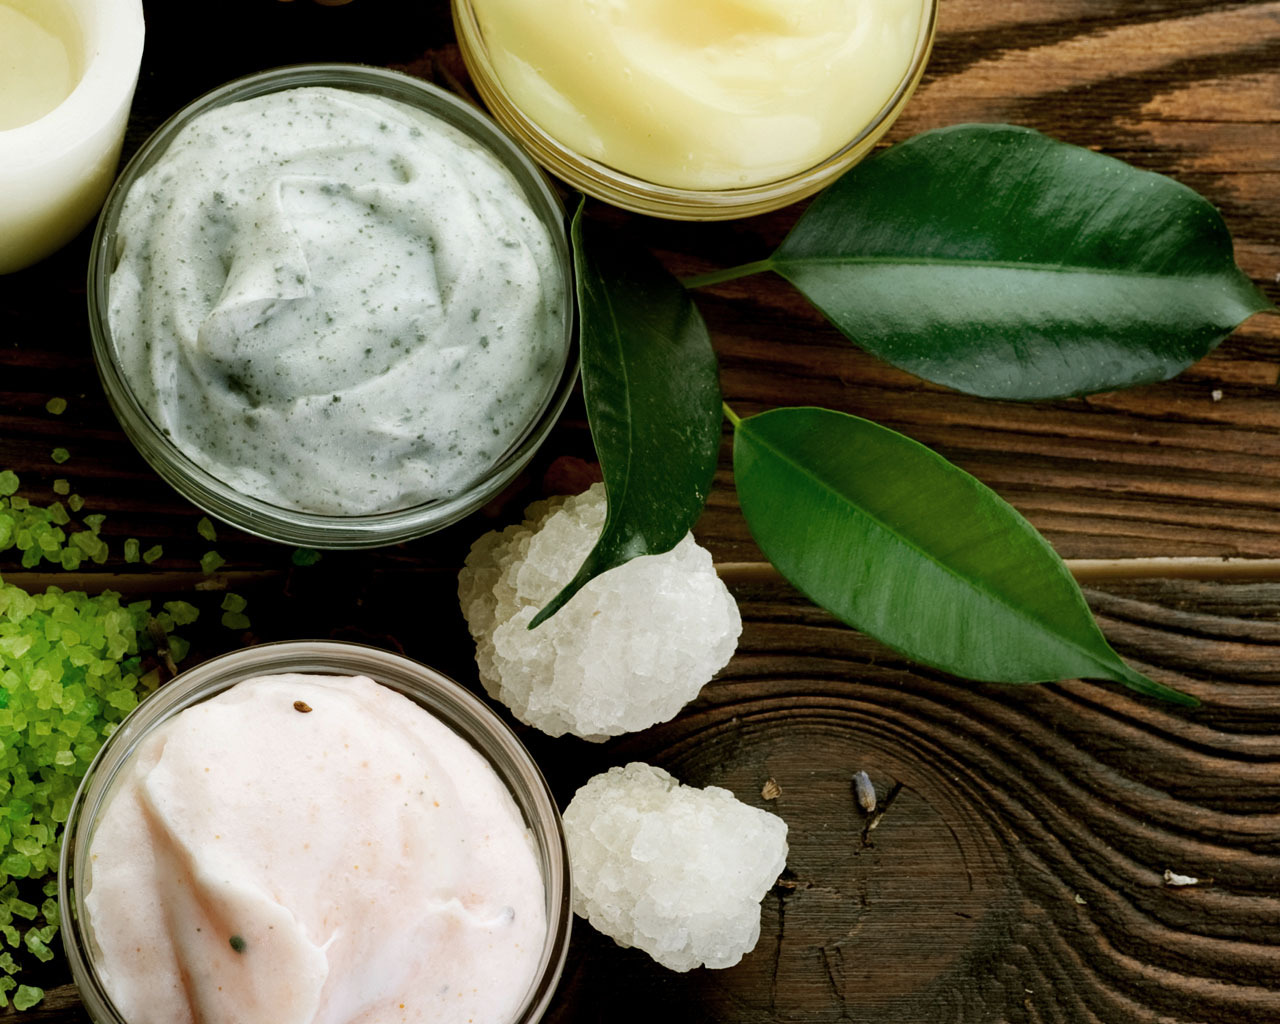 Best All Natural Skin Care Products